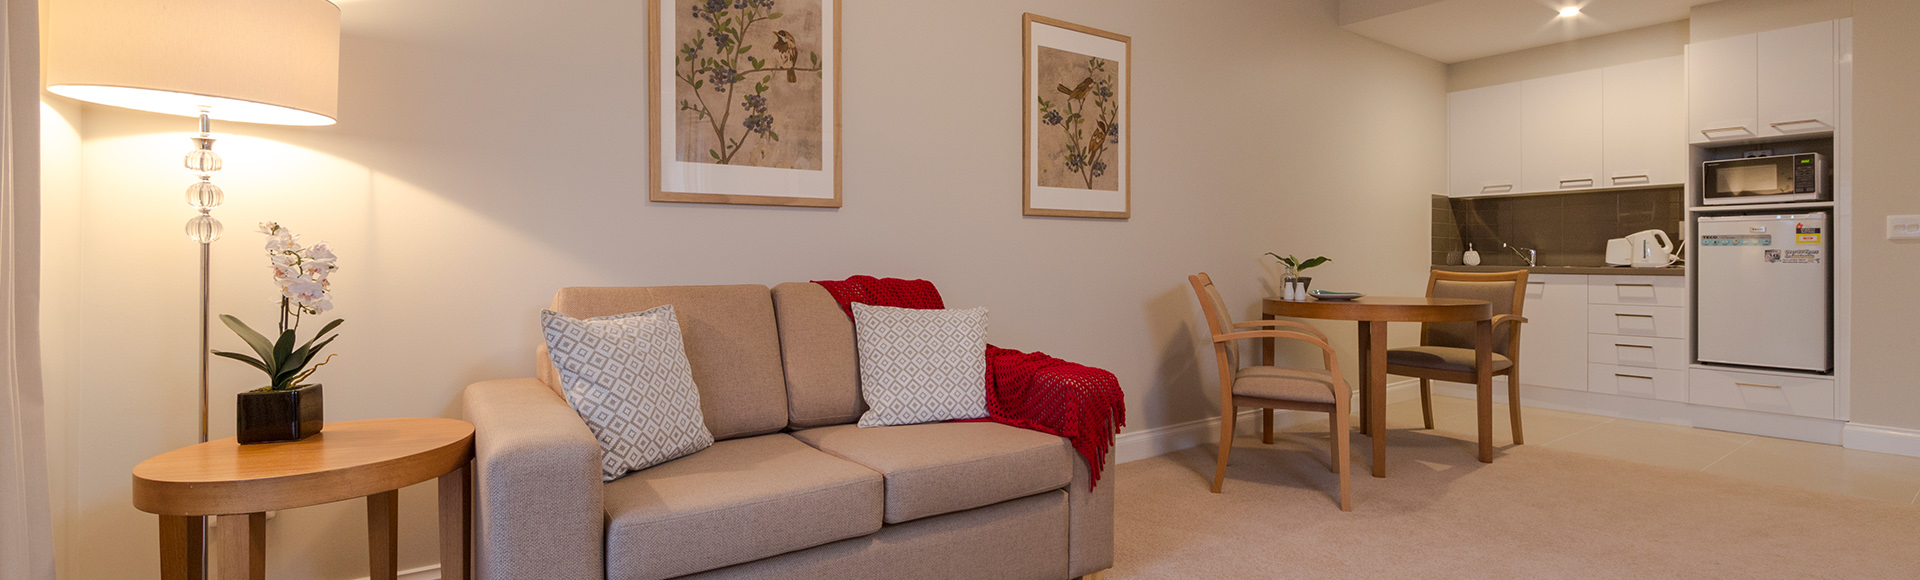 Cameron Close Serviced Apartment  1 Bedroom  Kitchenette